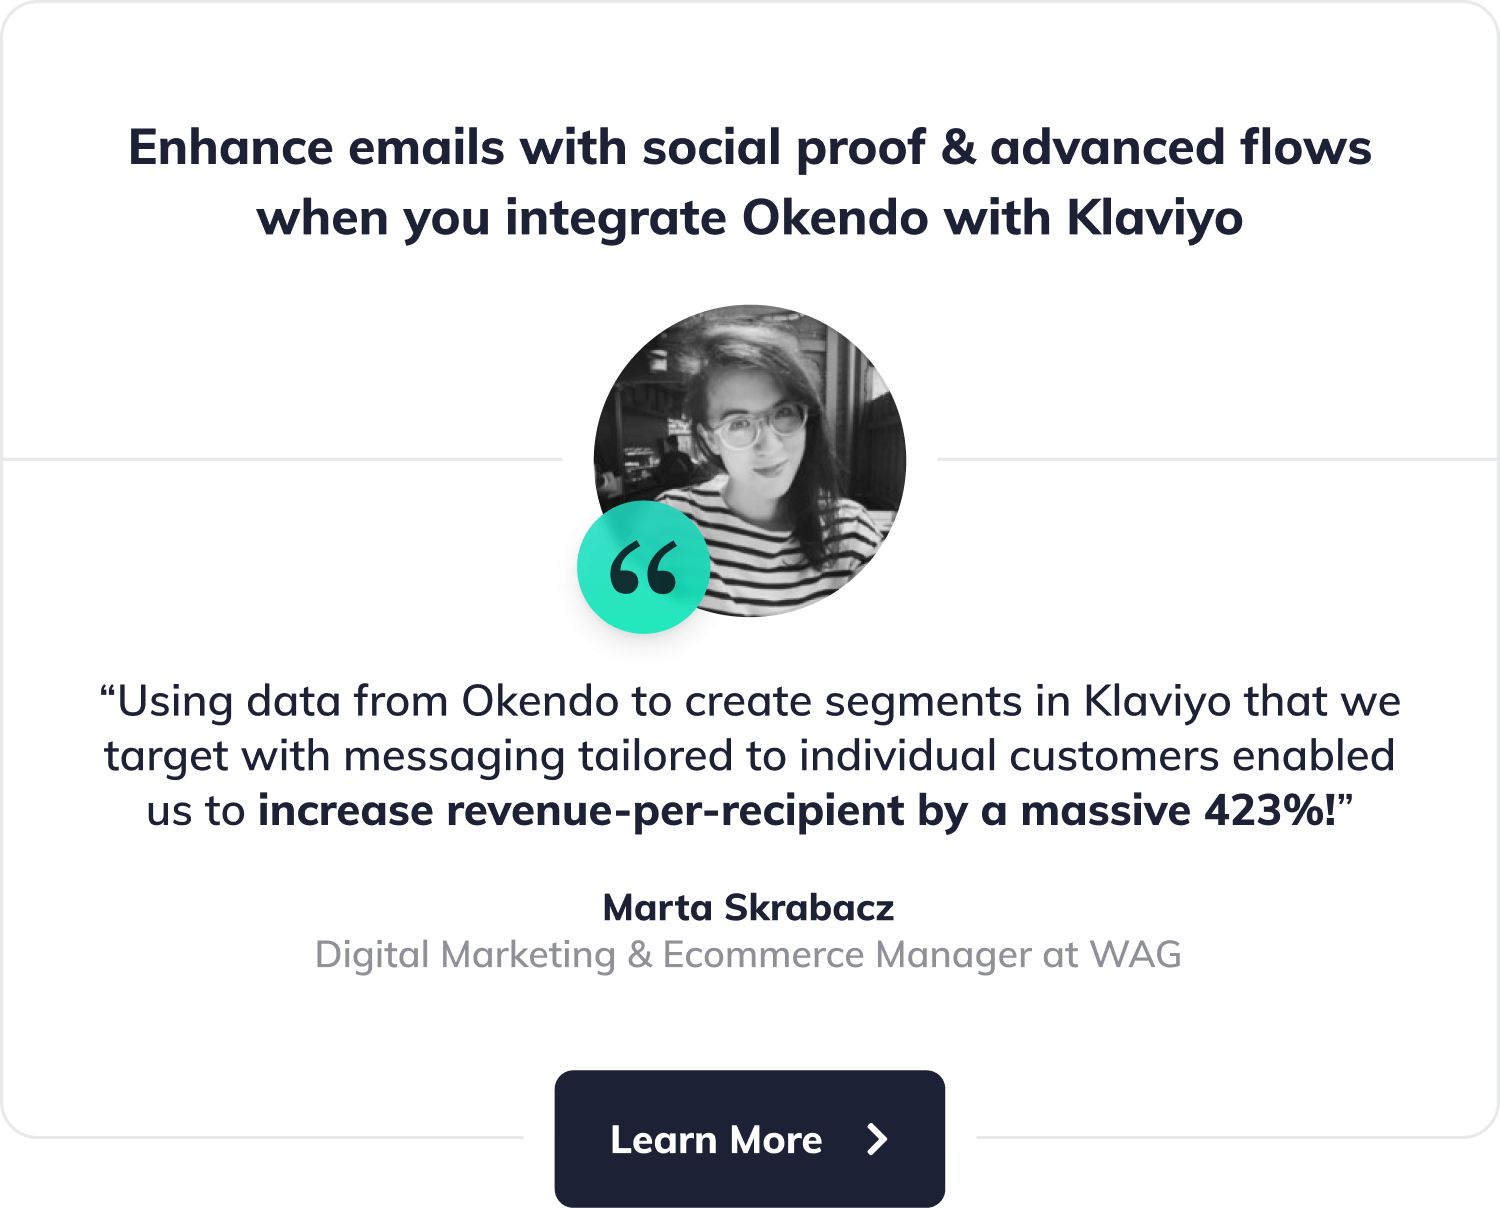 "Enhance emails with social proof & advanced flowswhen you integrate Okendo with Klaviyo. ""Using data from Okendo to create segments in Klaviyo that we target with messaging tailored to individual customers enabled us to increase revenue-per-recipient by a massive 423%!"", says Marta Skrabacz, Digital Marketing & Ecommerce Manager at WAG. Button with label"